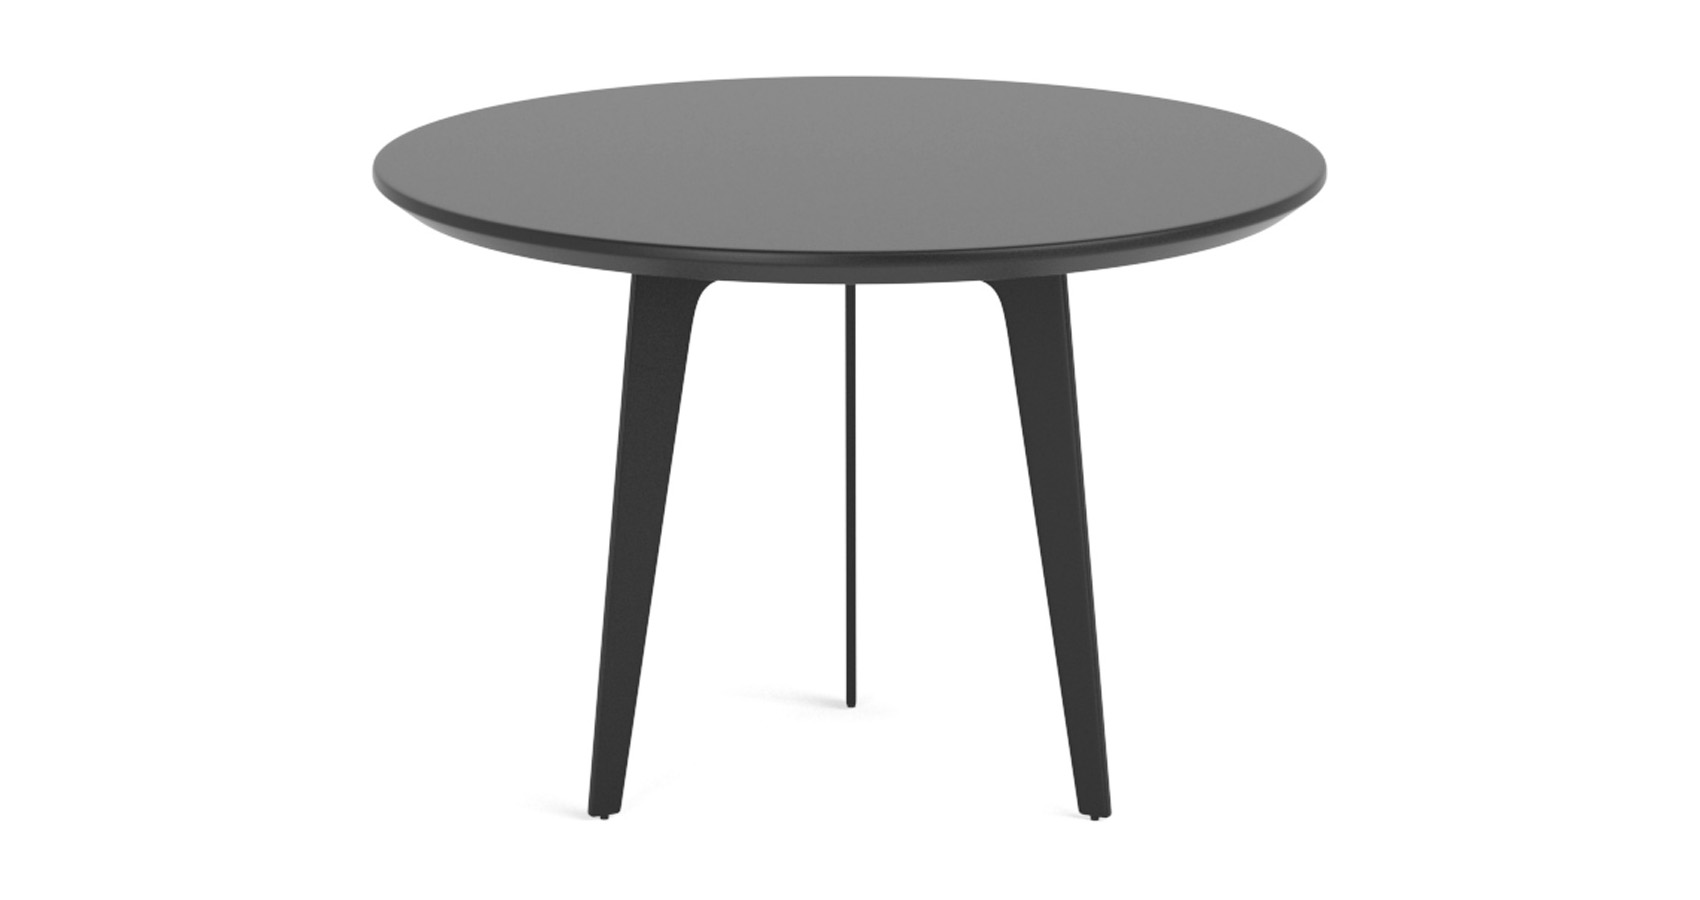 Dart Coffee Table. Dart_Coffee_Table_Zorro; Dart_Coffee_Table_Luca;  Dart__Large_Coffee_Table_Black; Dart_Large_Coffee_Table_White ...